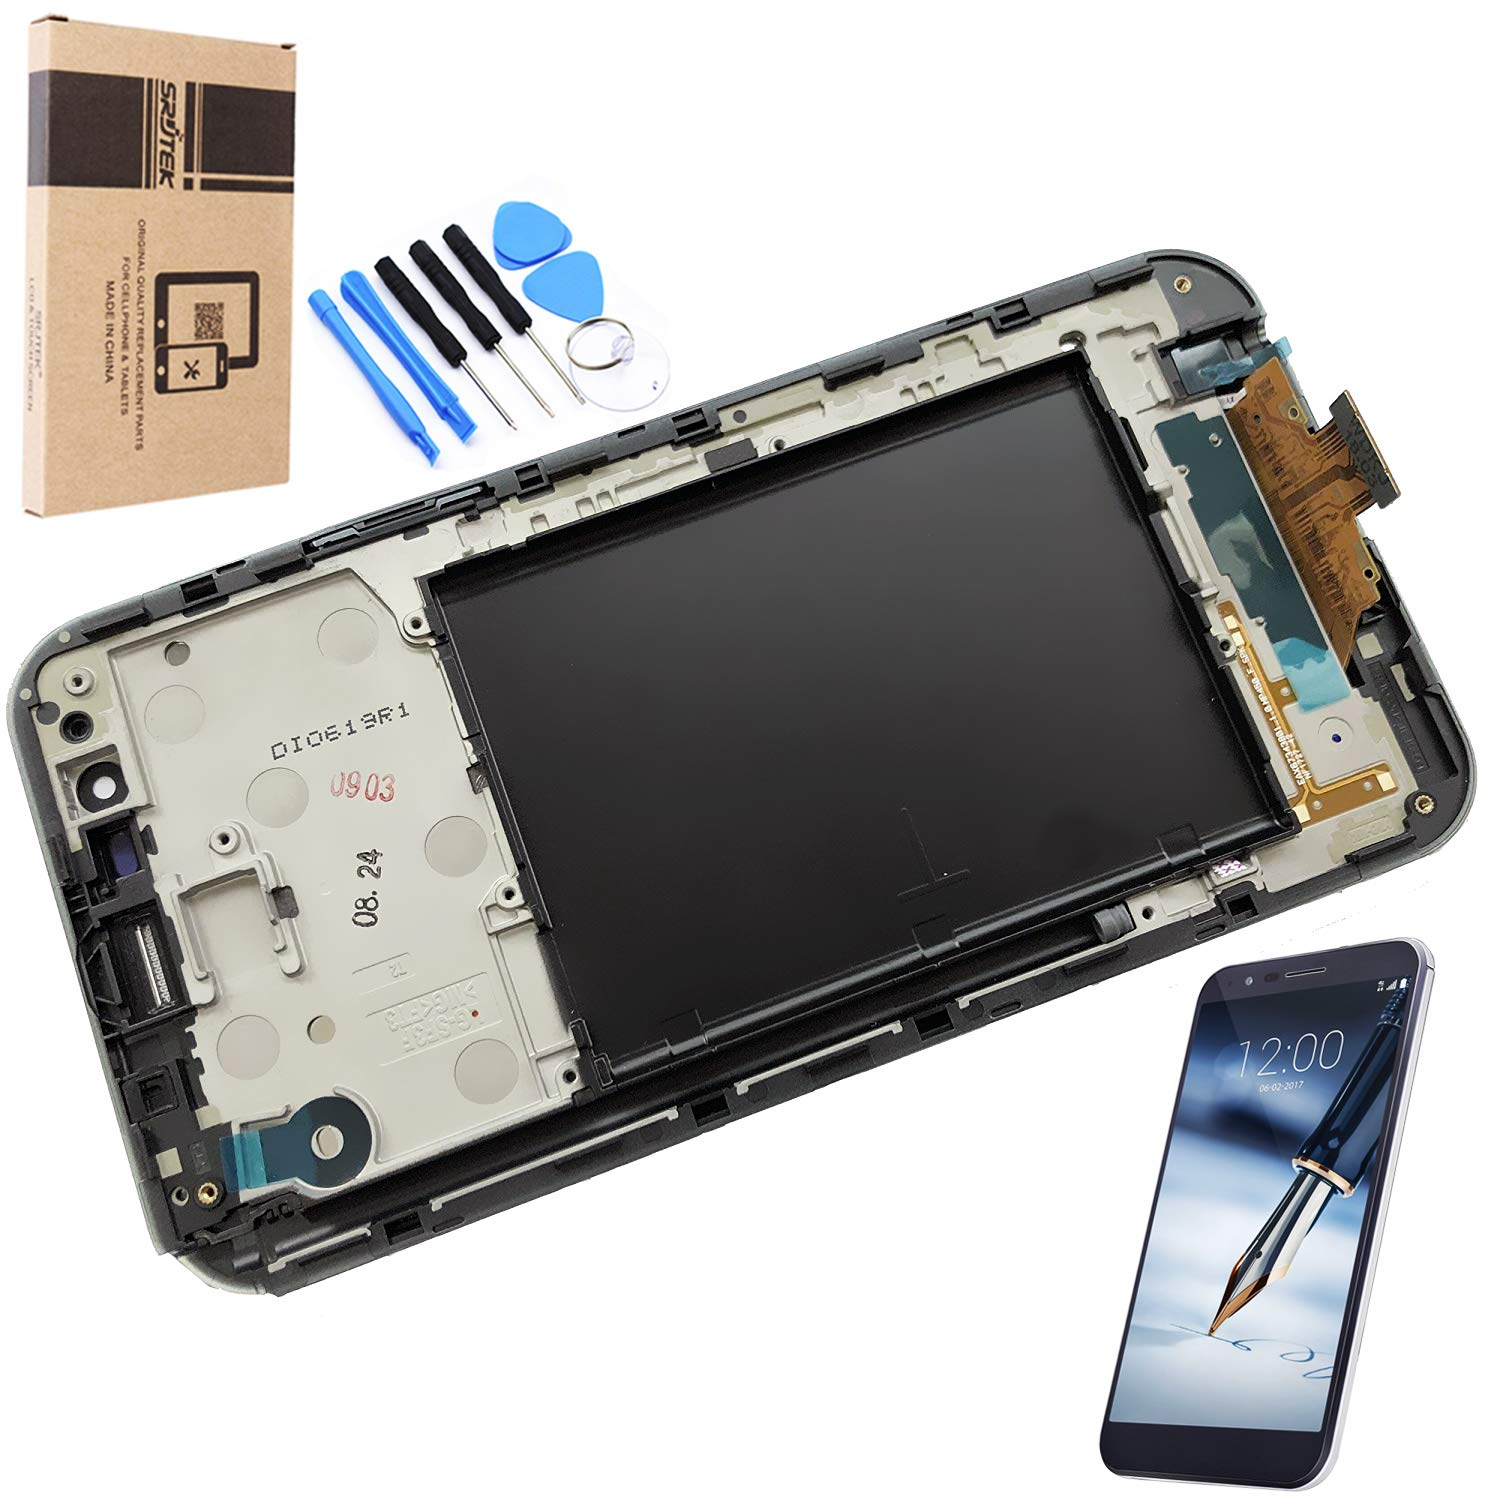 Screen Replacement Parts for LG Stylo 3 Plus MP450 TP450 M470F M470,Screen Replacement Parts Include LCD Display Screen and Touch Screen Digitizer(Black)